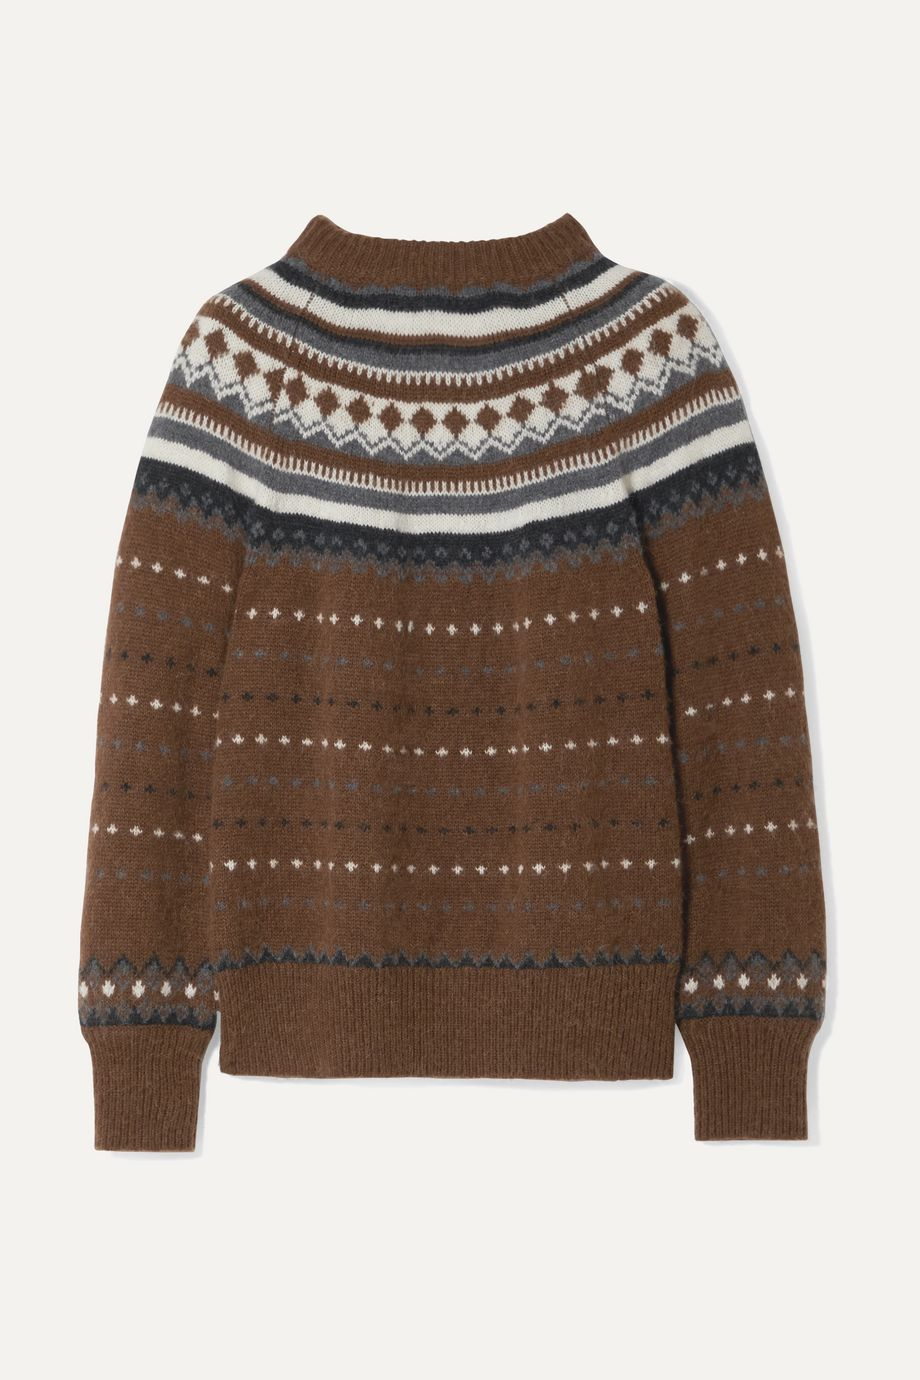 RE/DONE 50s Fair Isle knitted sweater